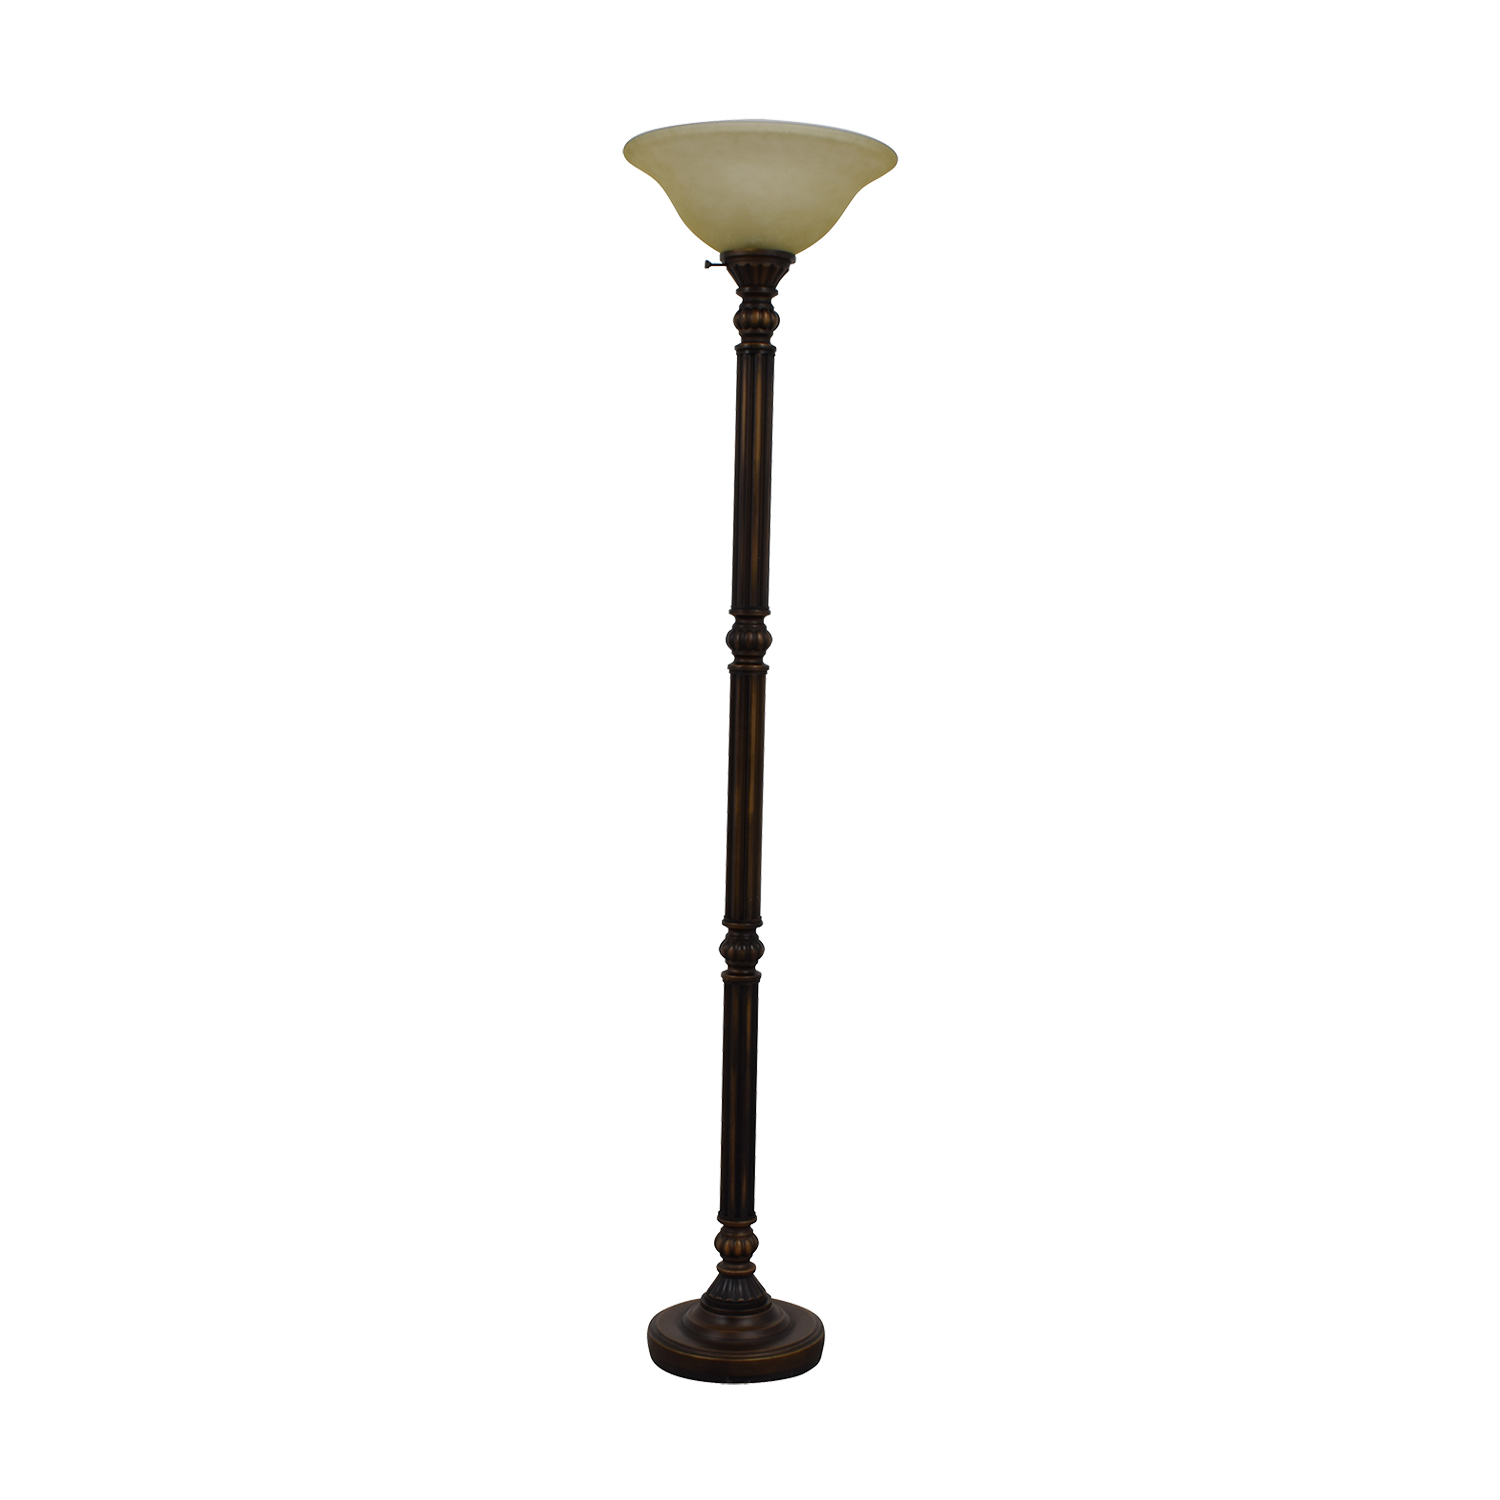 buy Pottery Barn Pottery Barn Domed Floor Lamp online